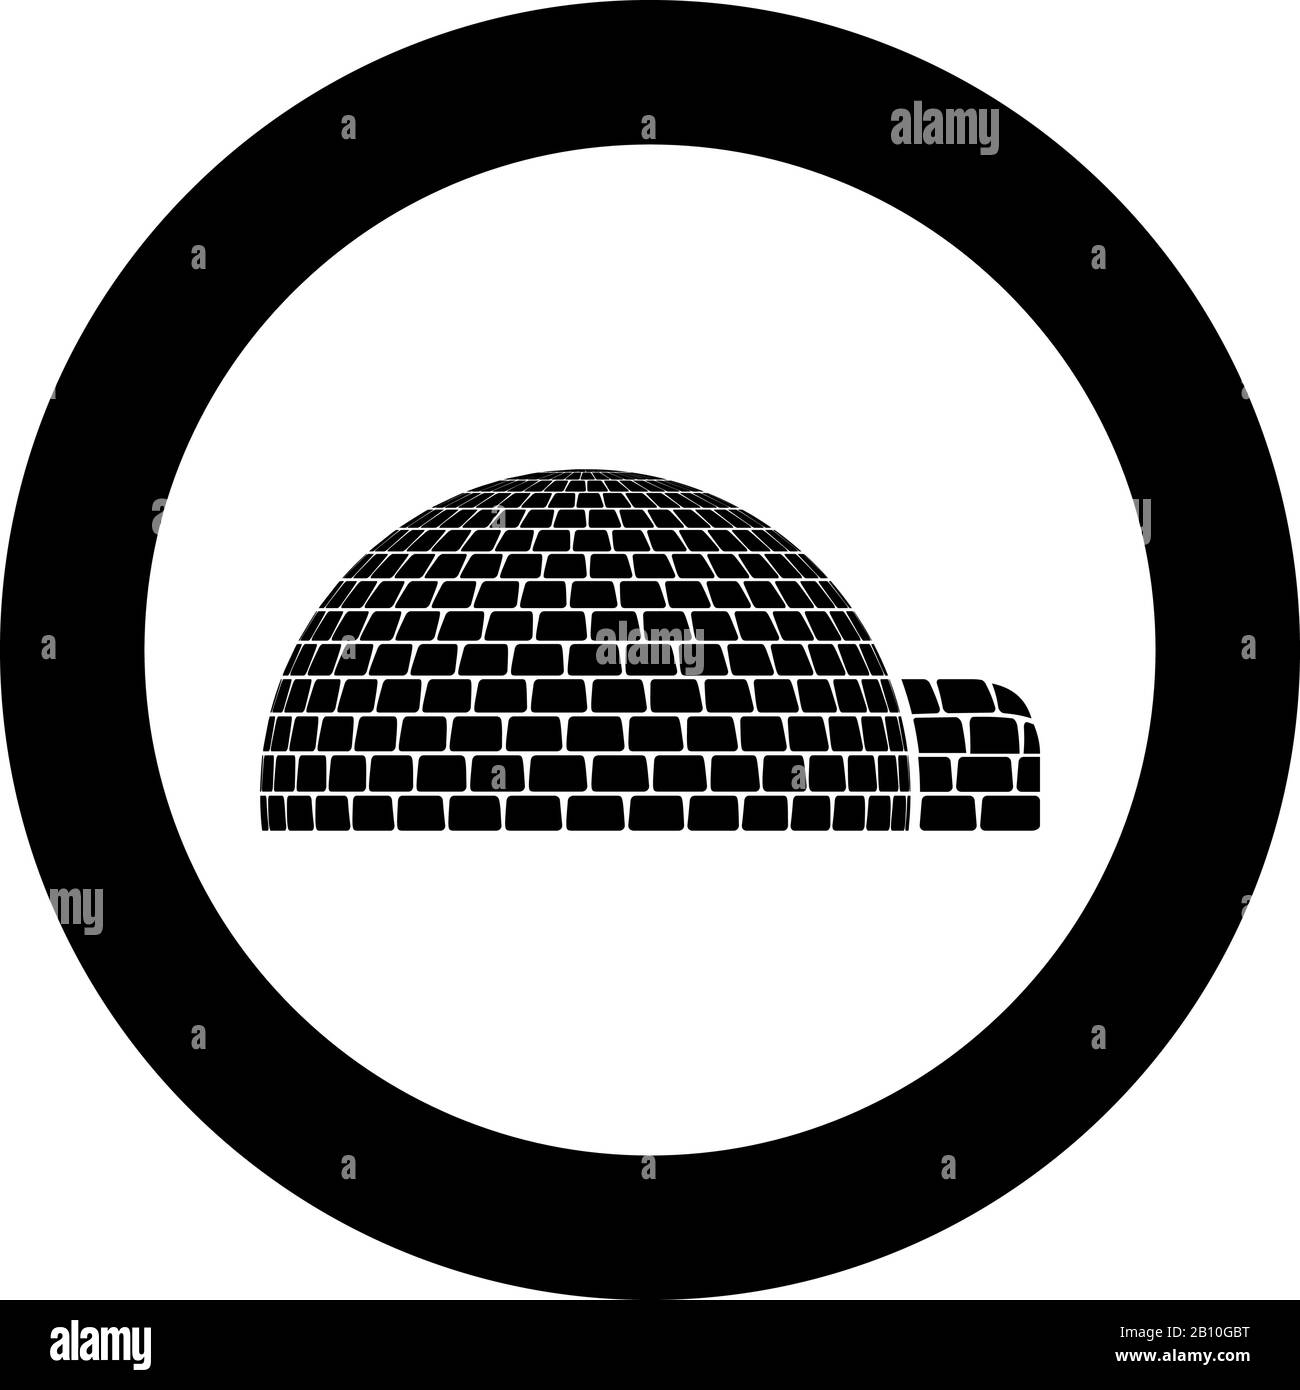 Igloo dwelling with icy cubes blocks Place when live inuits and eskimos Arctic home Dome shape icon in circle round black color vector illustration Stock Vector